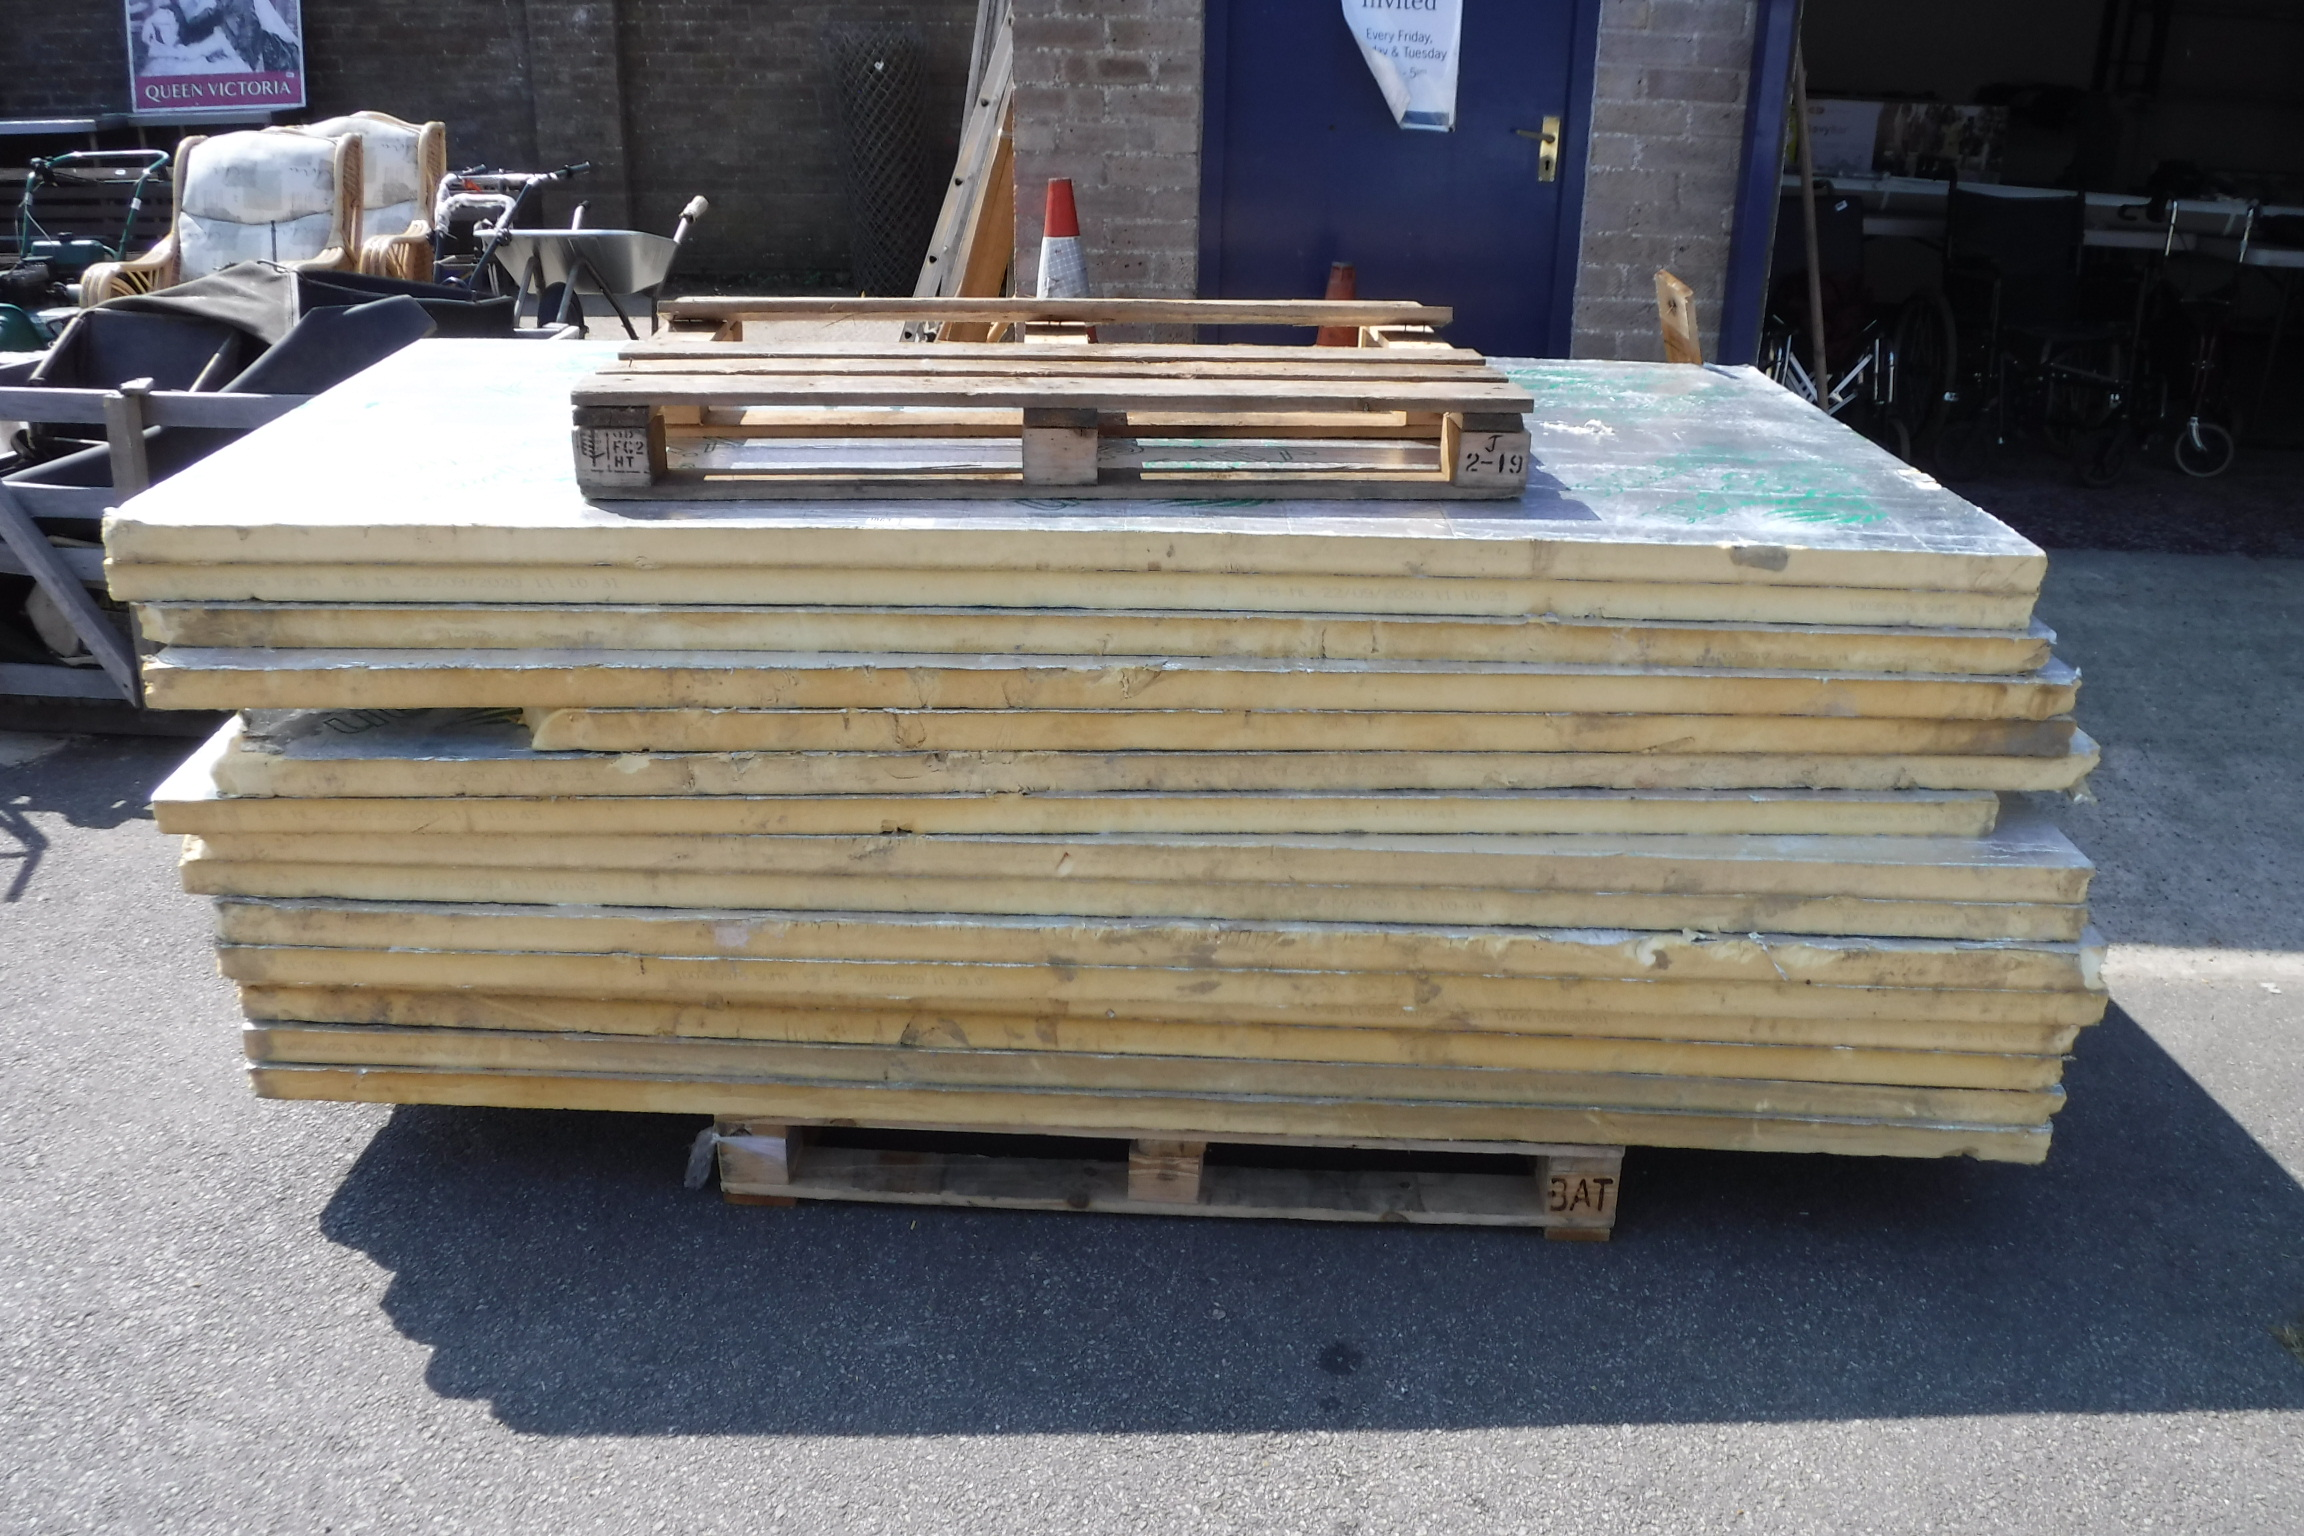 Pallet of various sized insulation boards